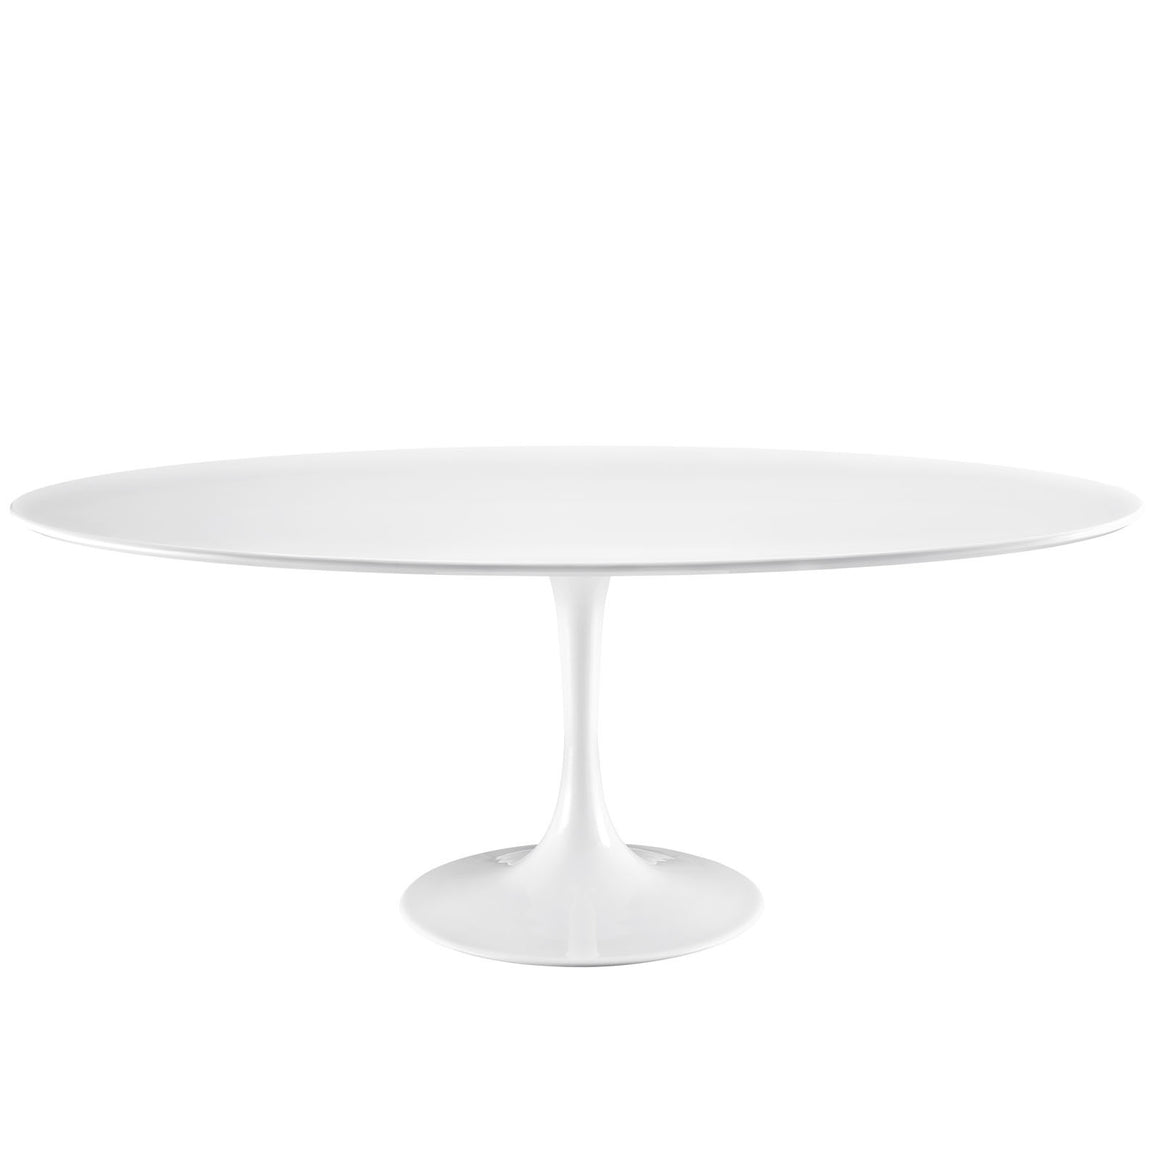 "Lippa 78"" Wood Top Dining Table"